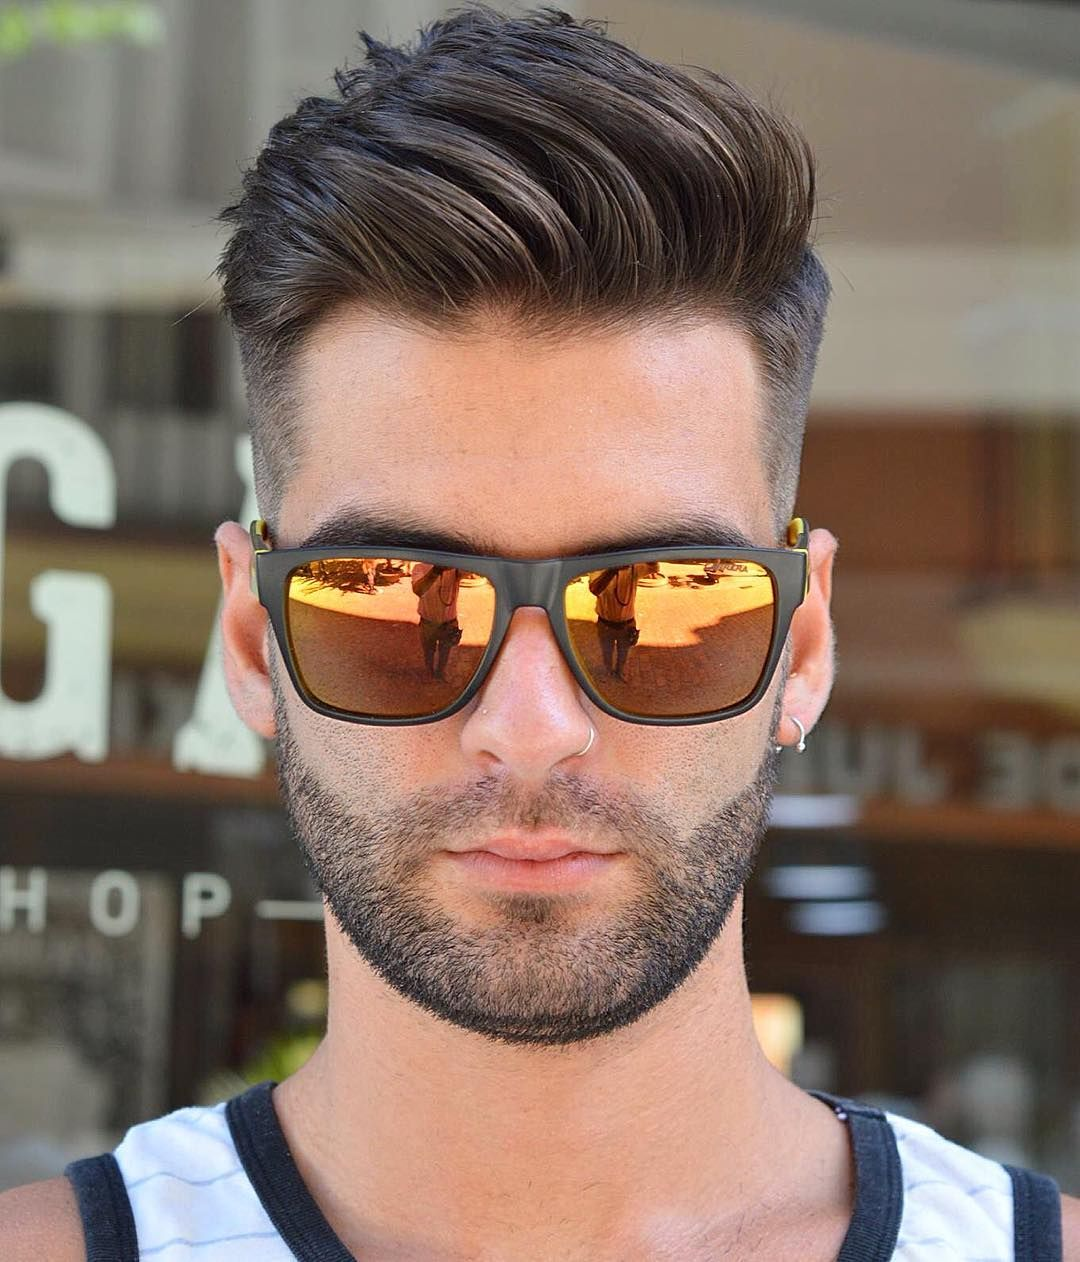 Mens Hair Styles 100 New Men's Hairstyles For 2018 Top Picks  Haircuts Hair